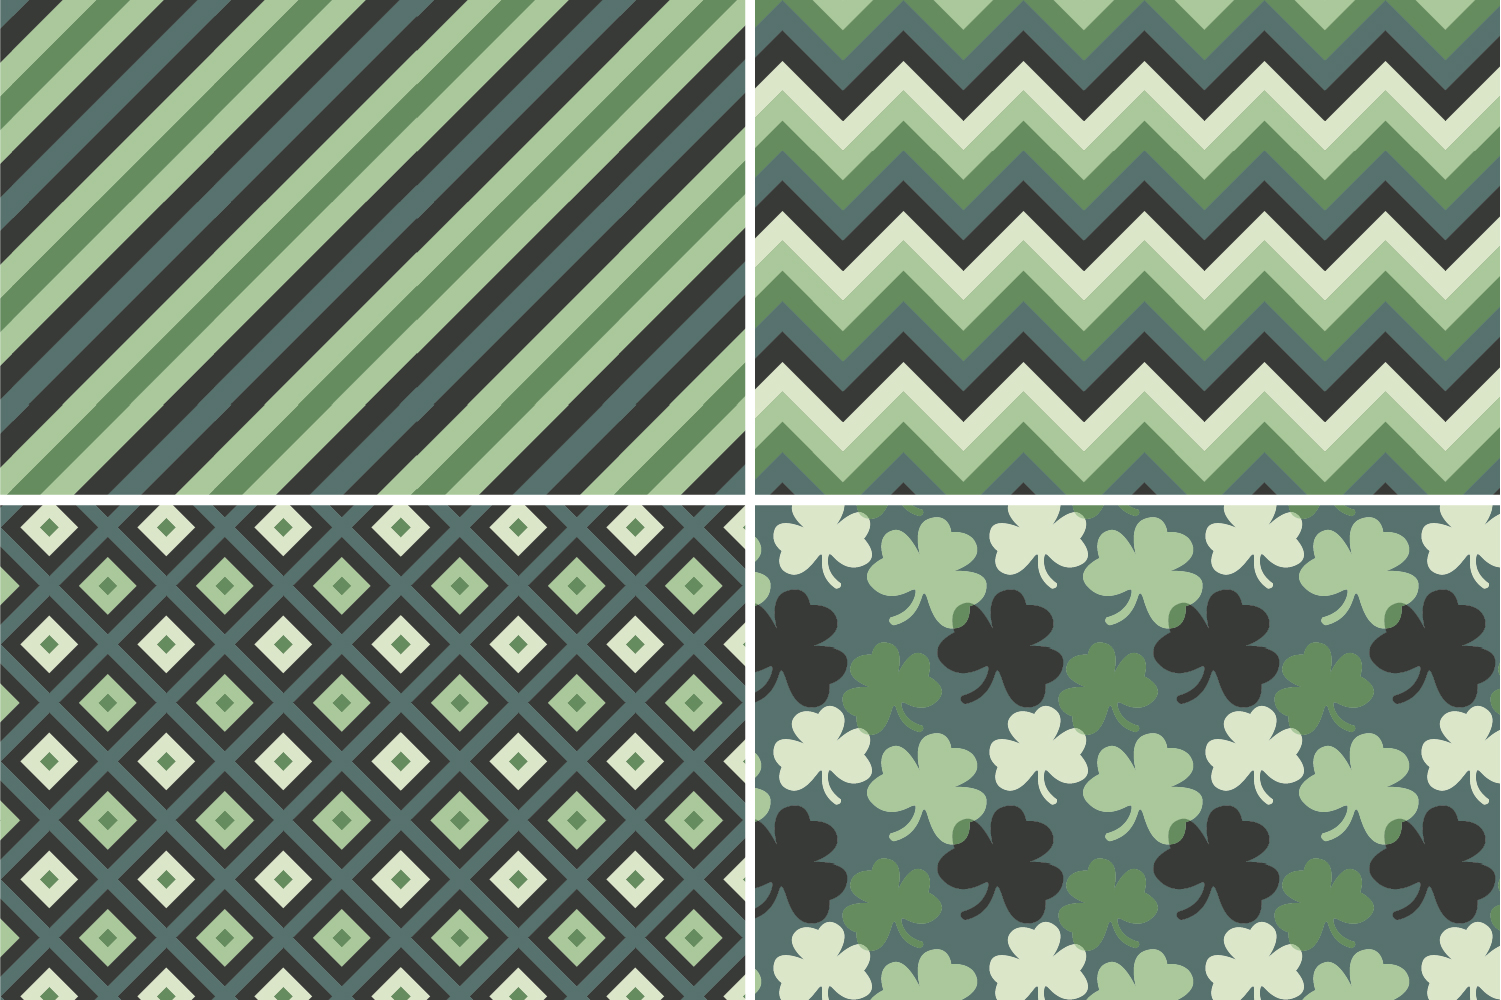 8 Seamless St. Patrick's Day Patterns Set 3 example image 7